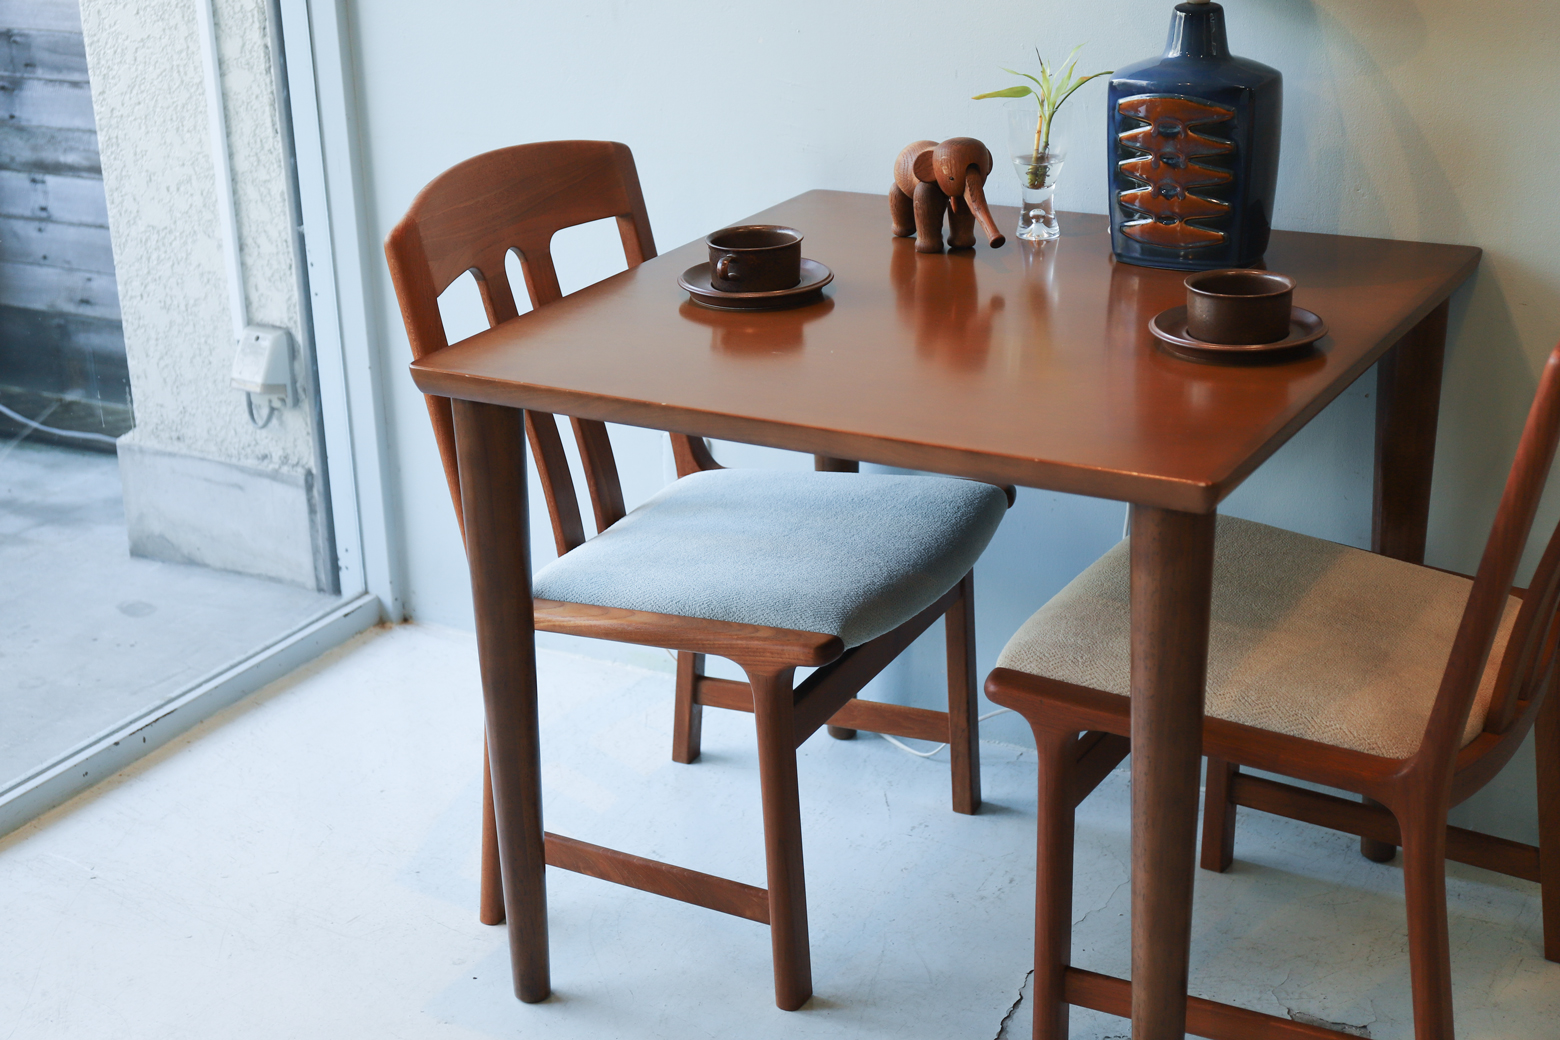 Danish Vintage L.Olsen&Son Dining Chair Re-Covering/デンマーク ヴィンテージ L.オルセン&サン ダイニング チェア 北欧家具 張替済み